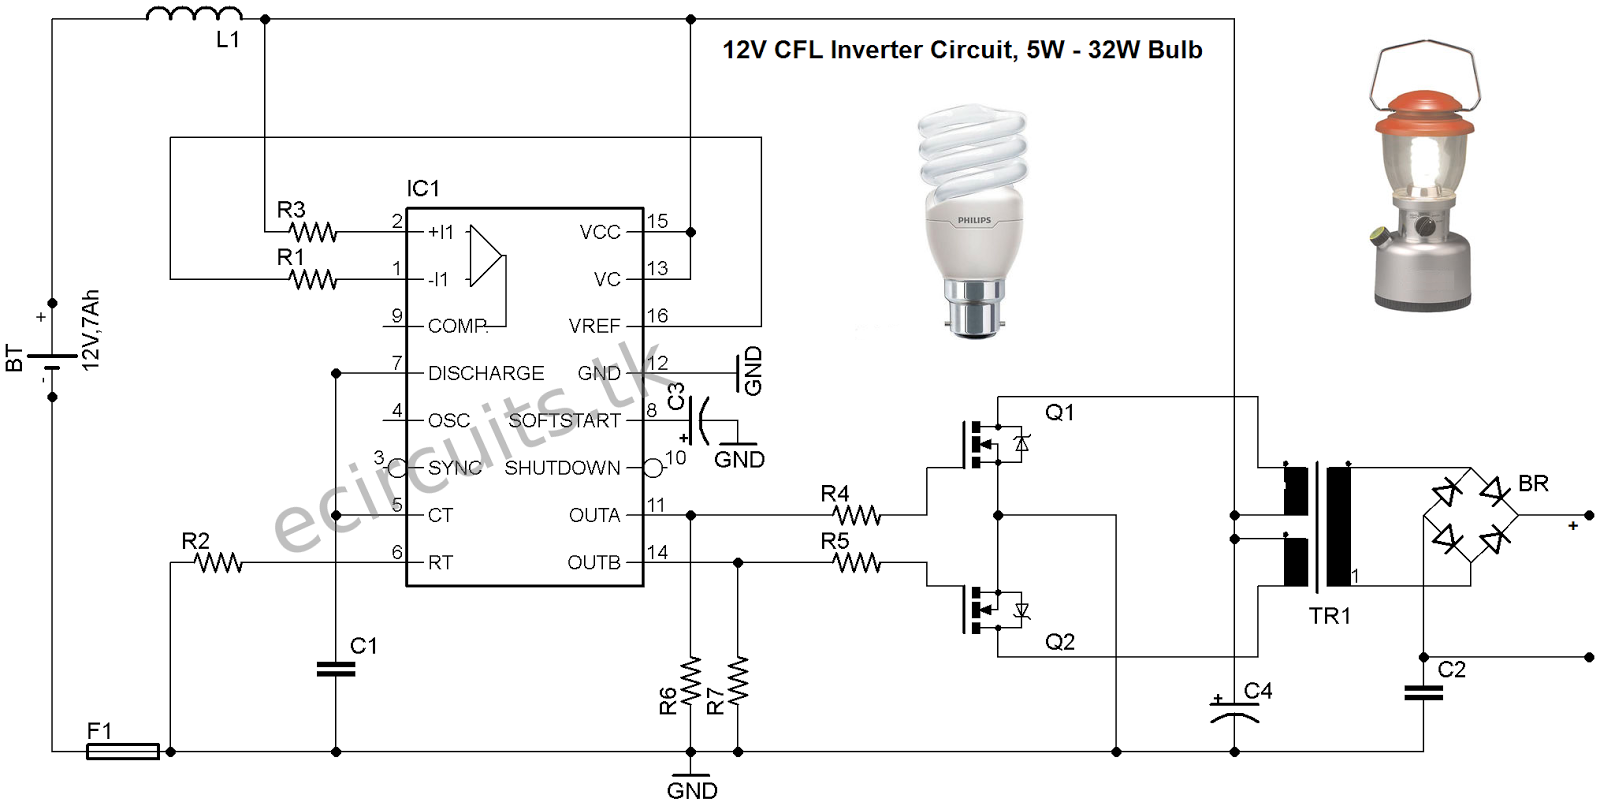 Cfl Emergency Ballast Wiring Diagram Reinvent Your Diagrams T12 12v Light Circuit Using 3525 Ic Mini Inverter Rh Pinterest Com Metal Halide